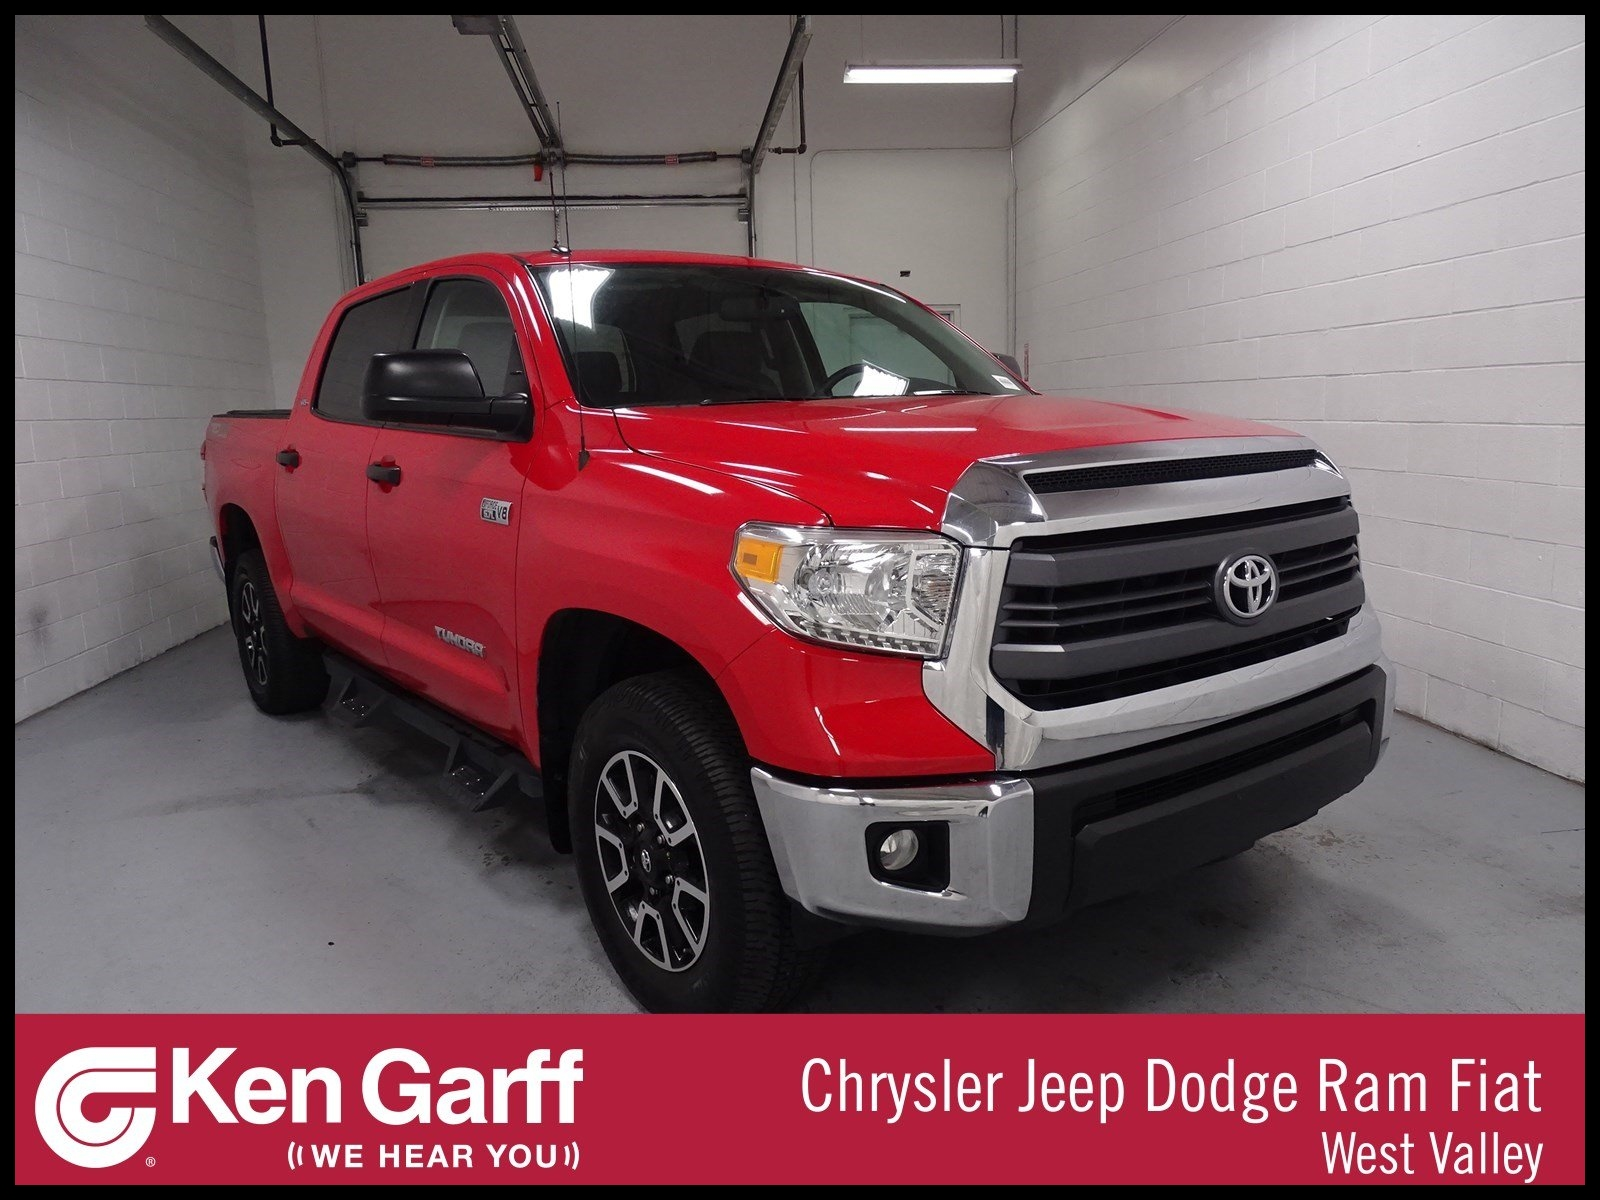 Pre Owned 2014 Toyota Tundra 4WD Truck SR5